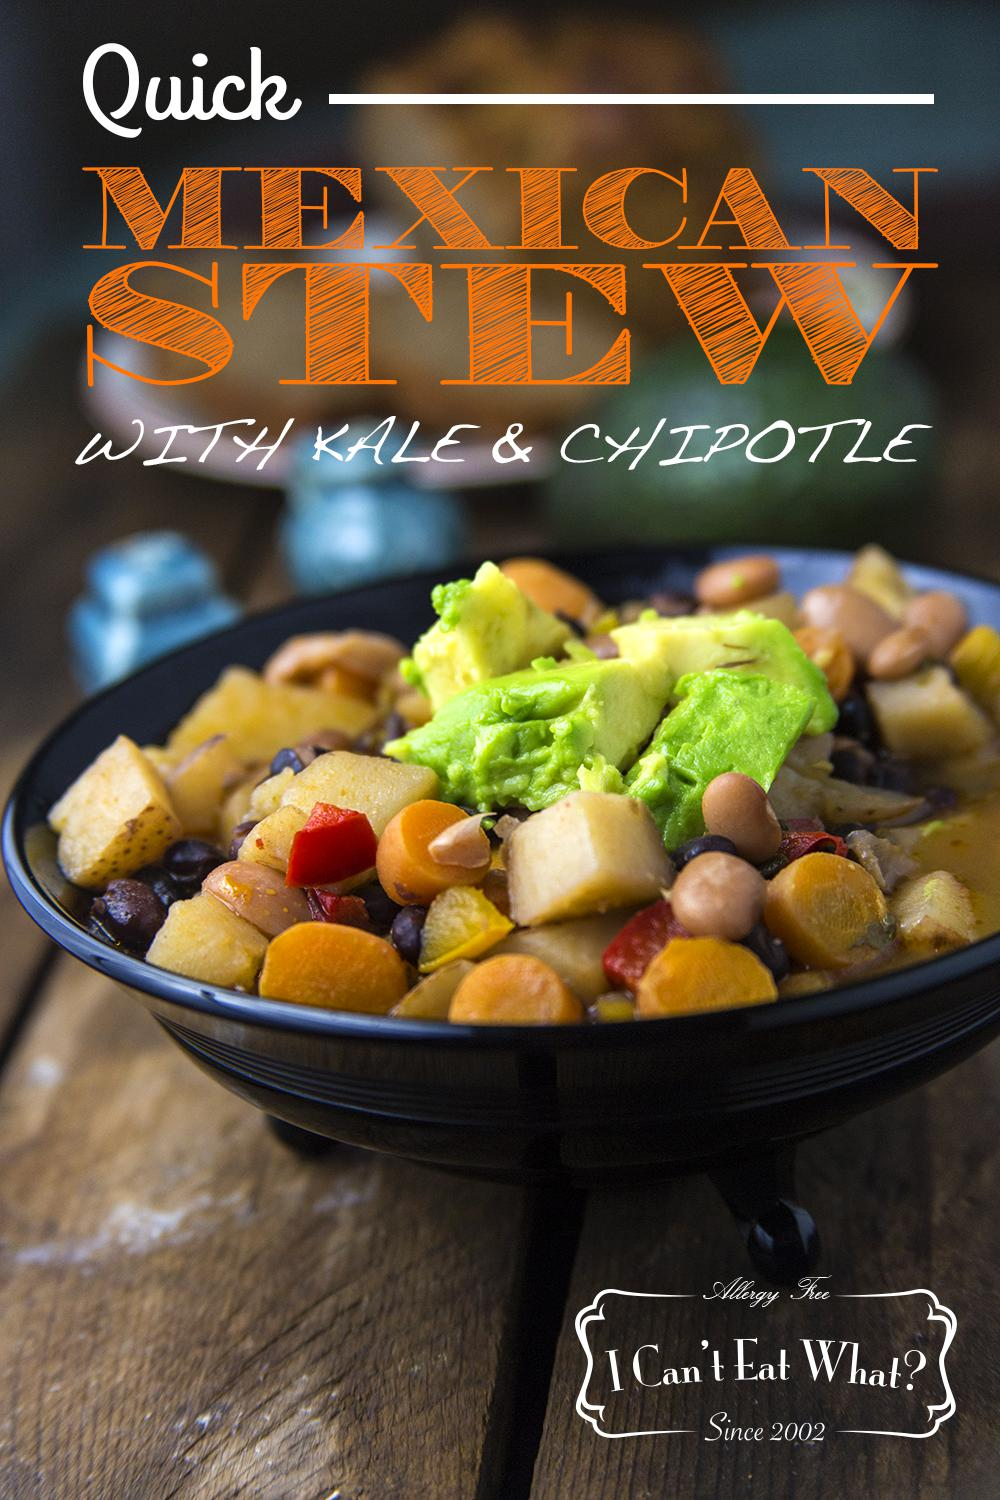 Quick Mexican Stew with Kale and Chipotle